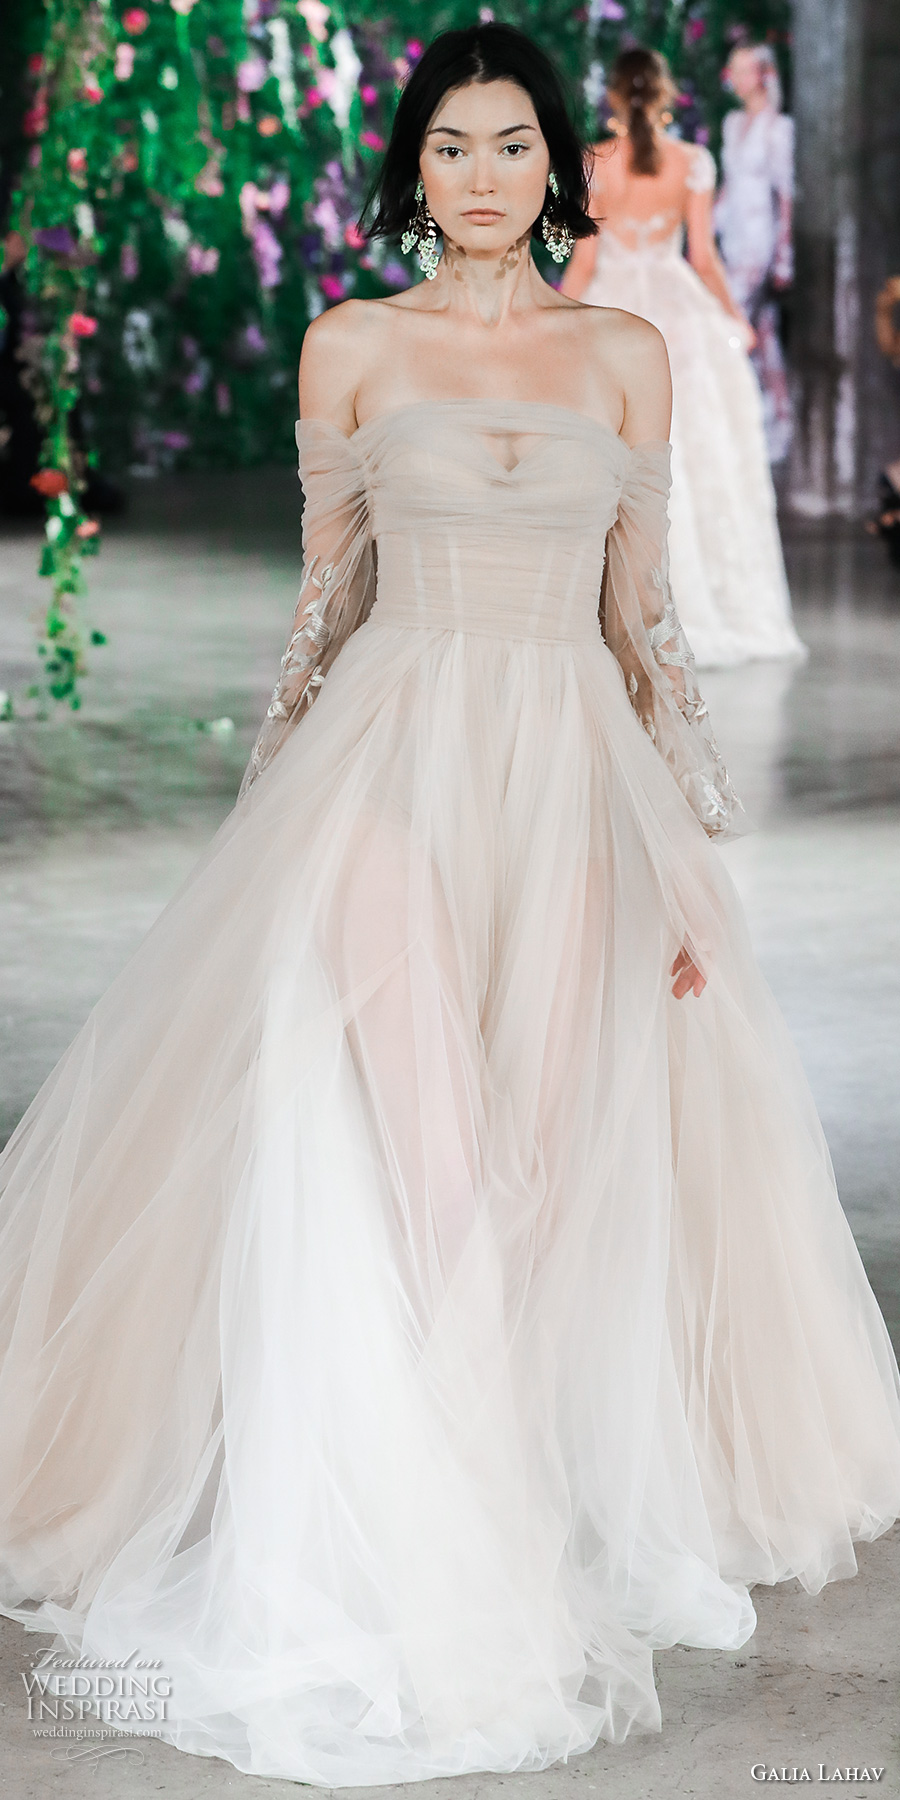 galia lahav fall 2018 bridal long sleeves off the shoulder ruched bodice romantic blush color a line wedding dress (7) mv